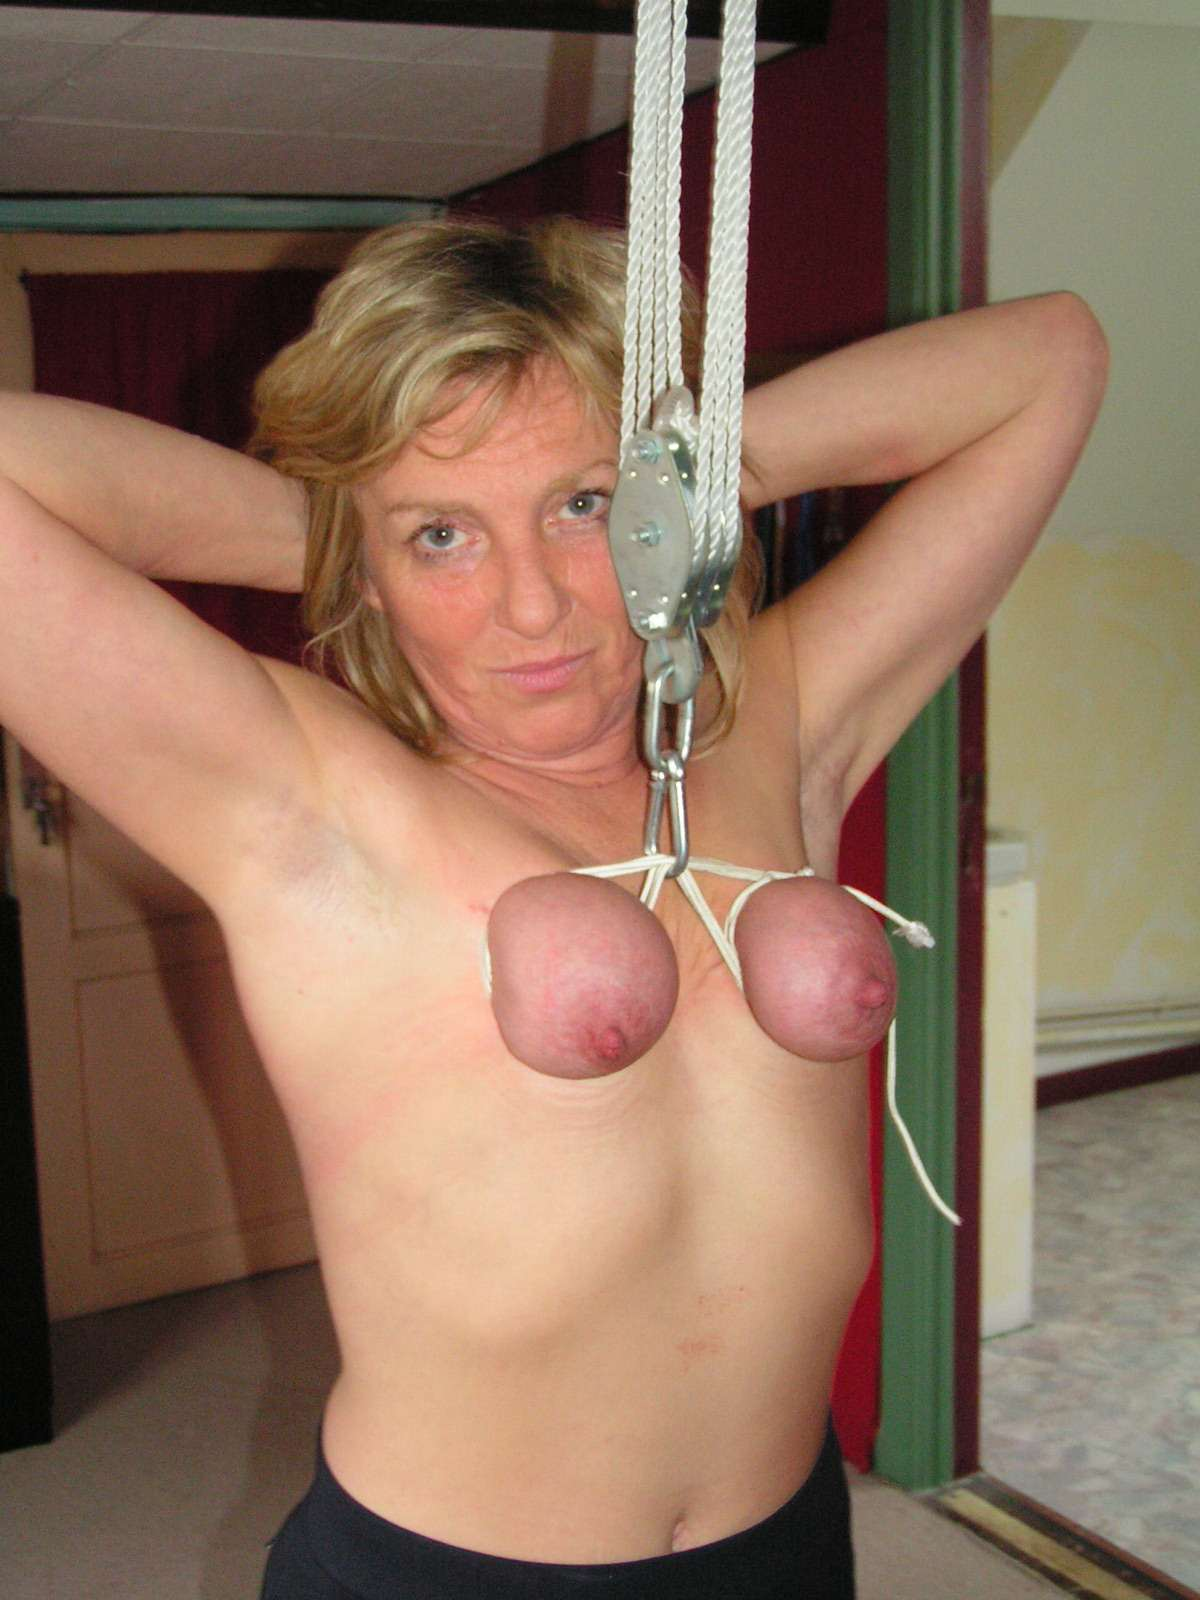 Erotic rope bra